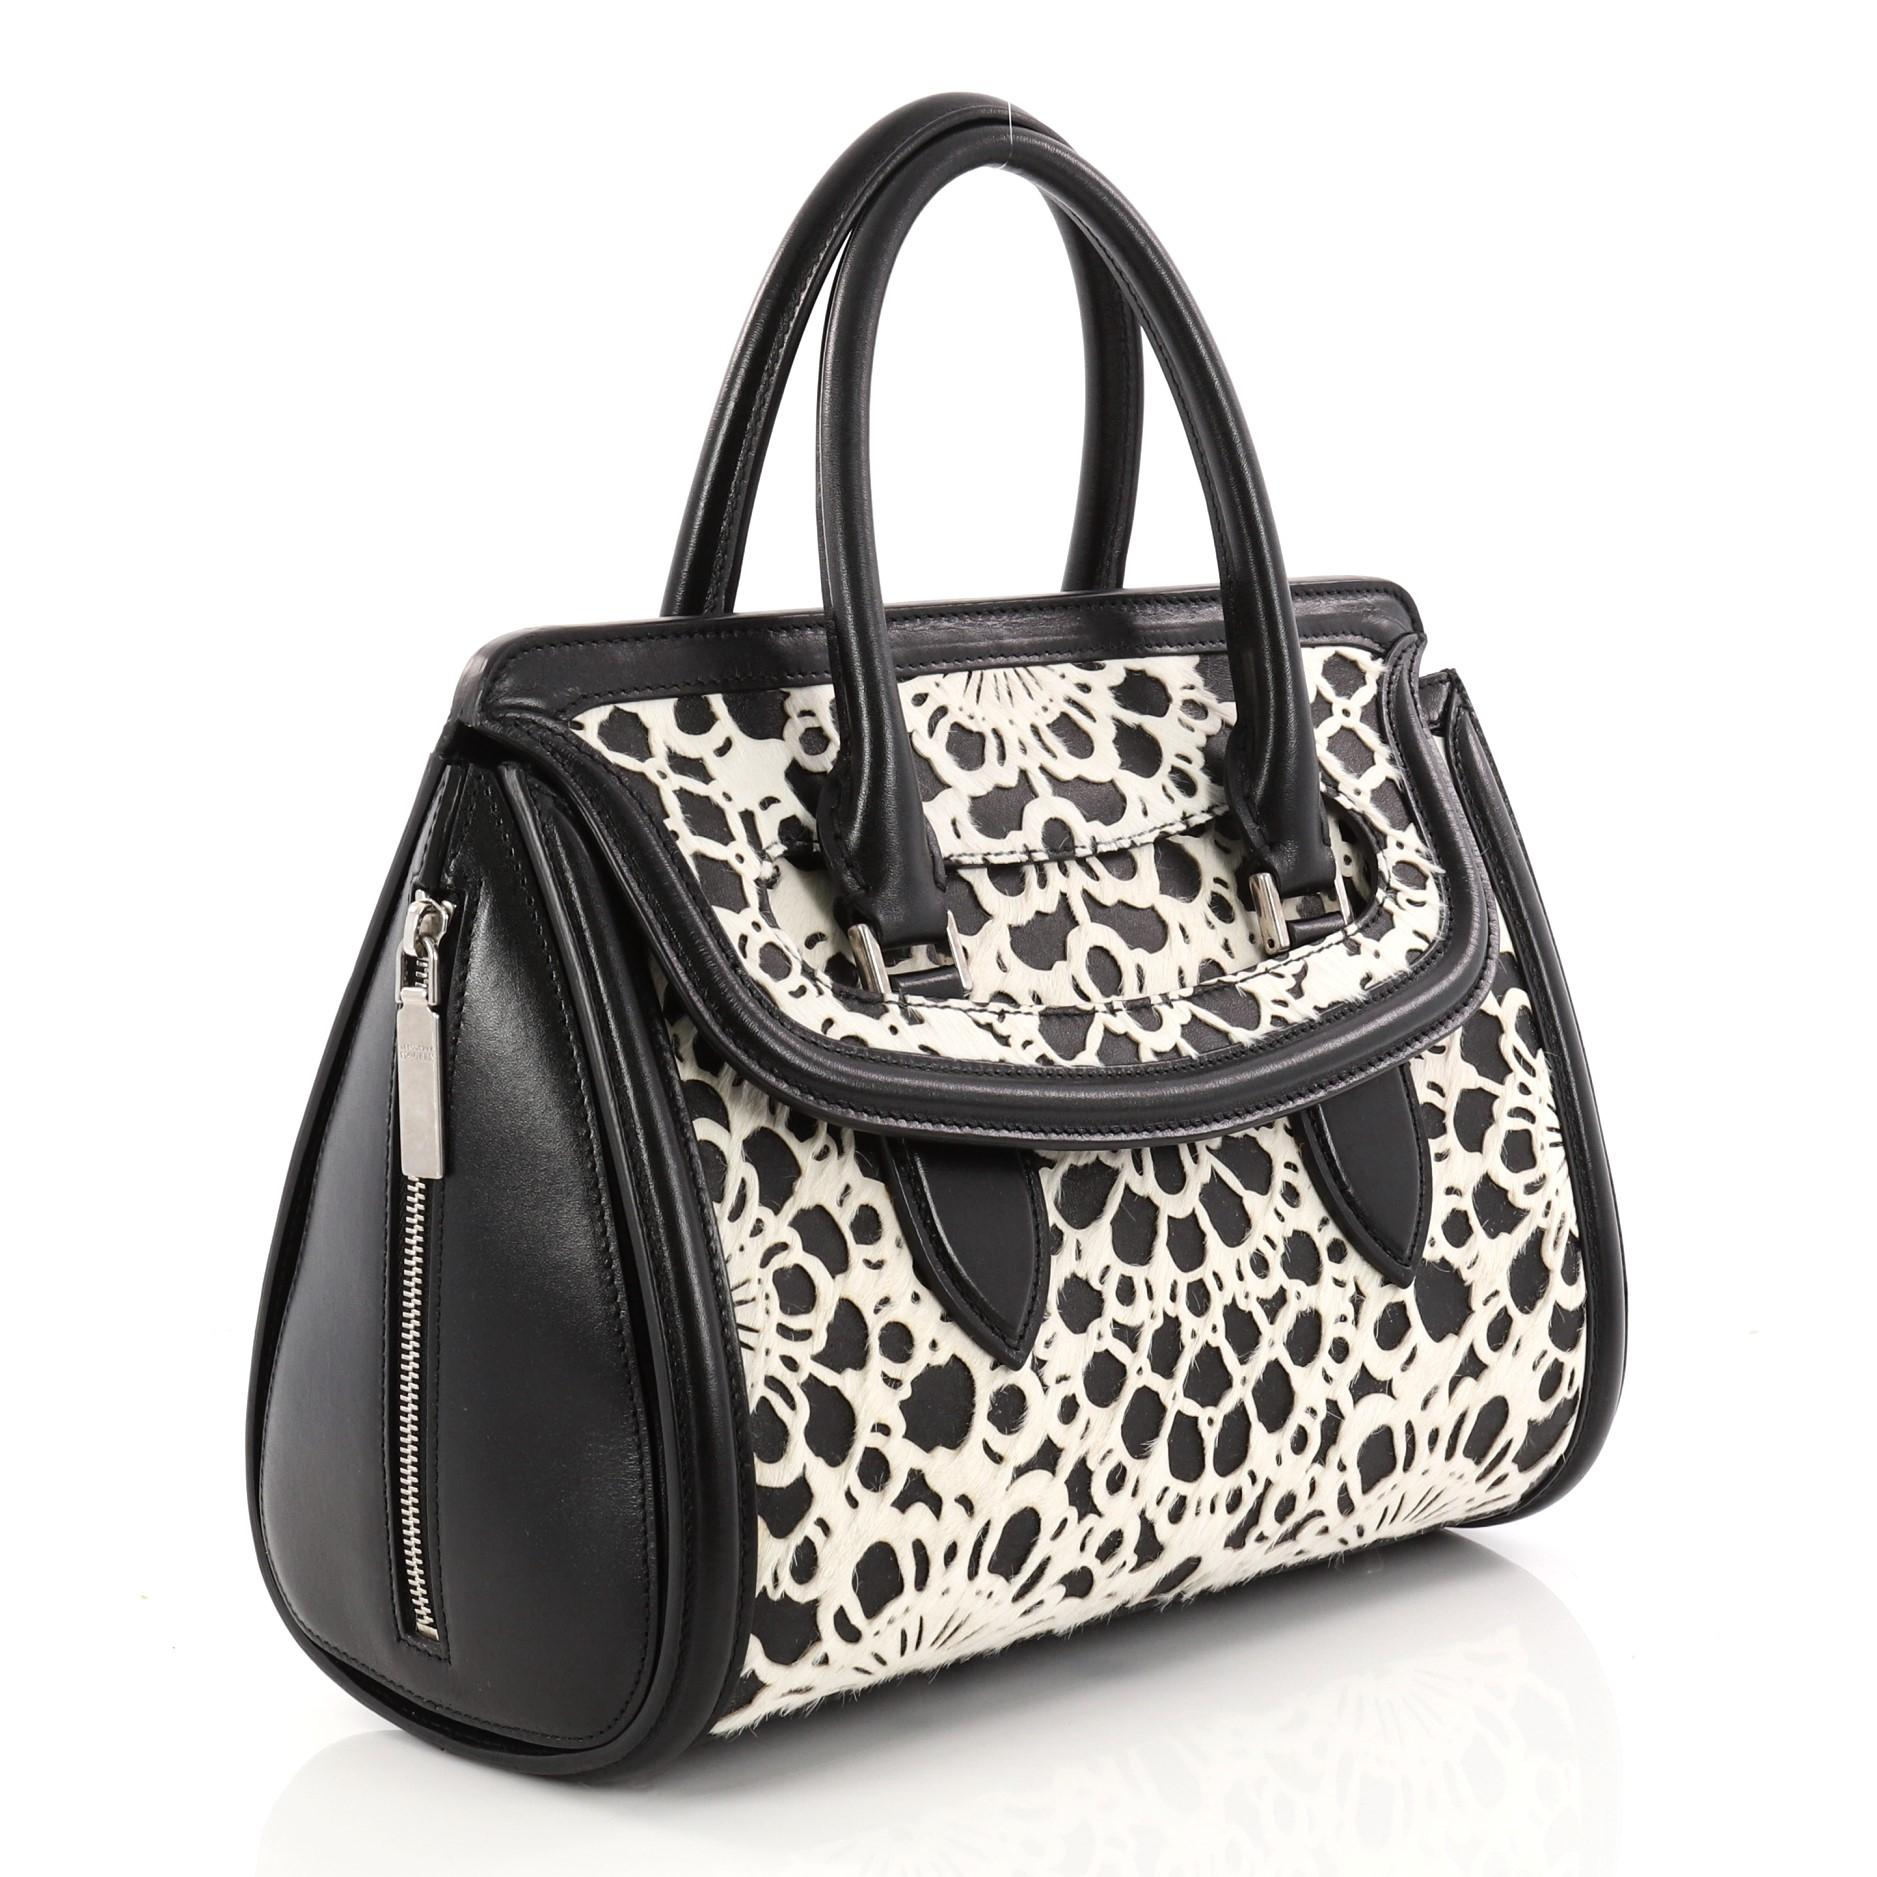 Alexander McQueen Alexander Mcqueen Heroine Tote Laser Cut Calf Hair And Leather East West Wj5J8cQI